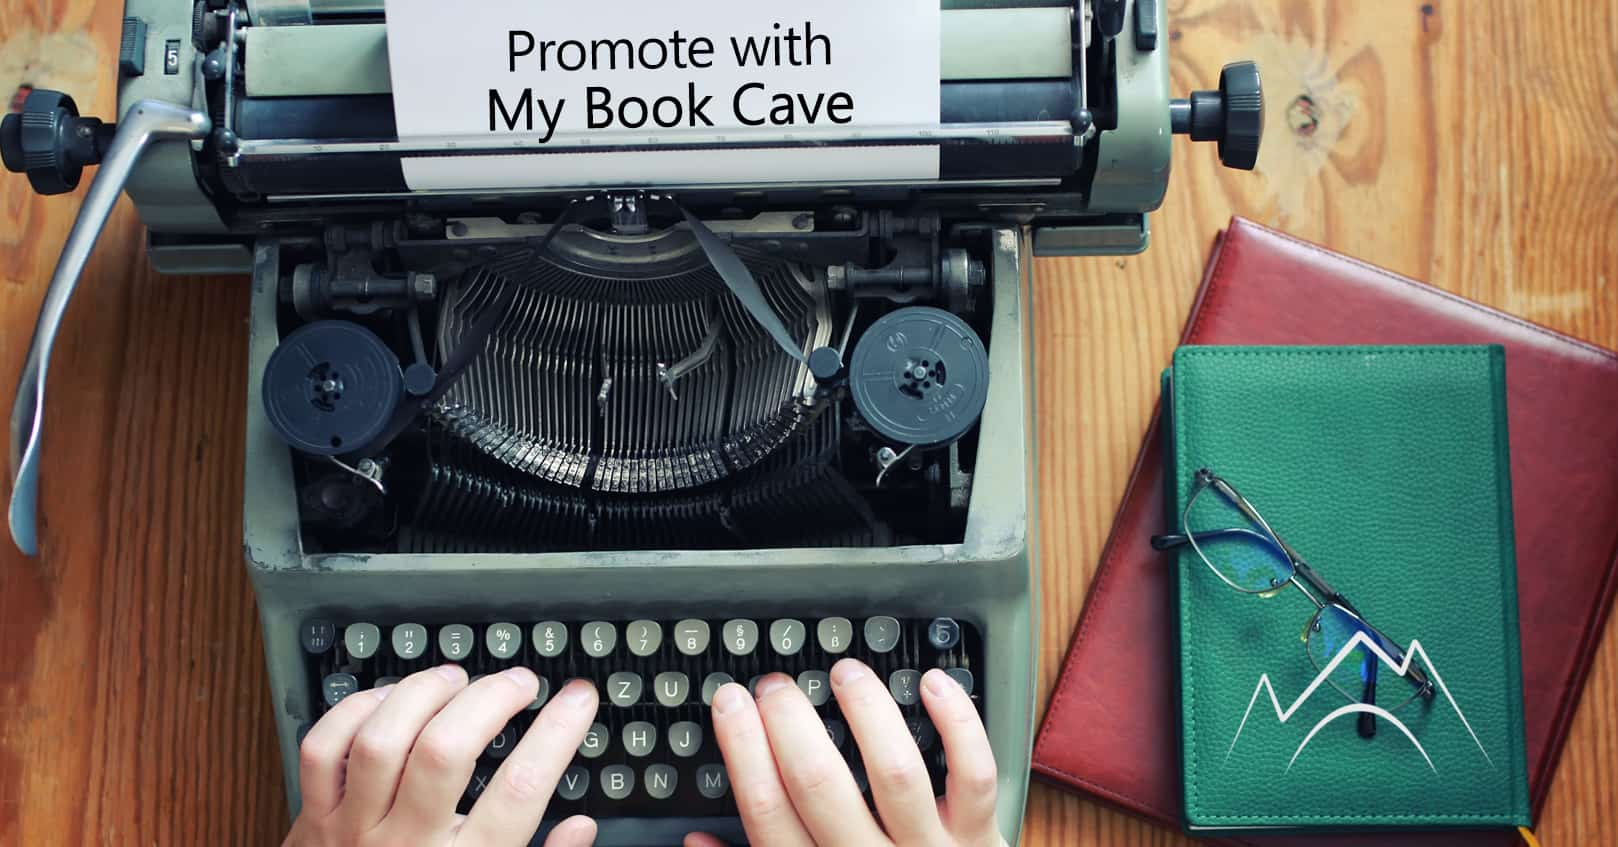 Why promote your books with My Book Cave